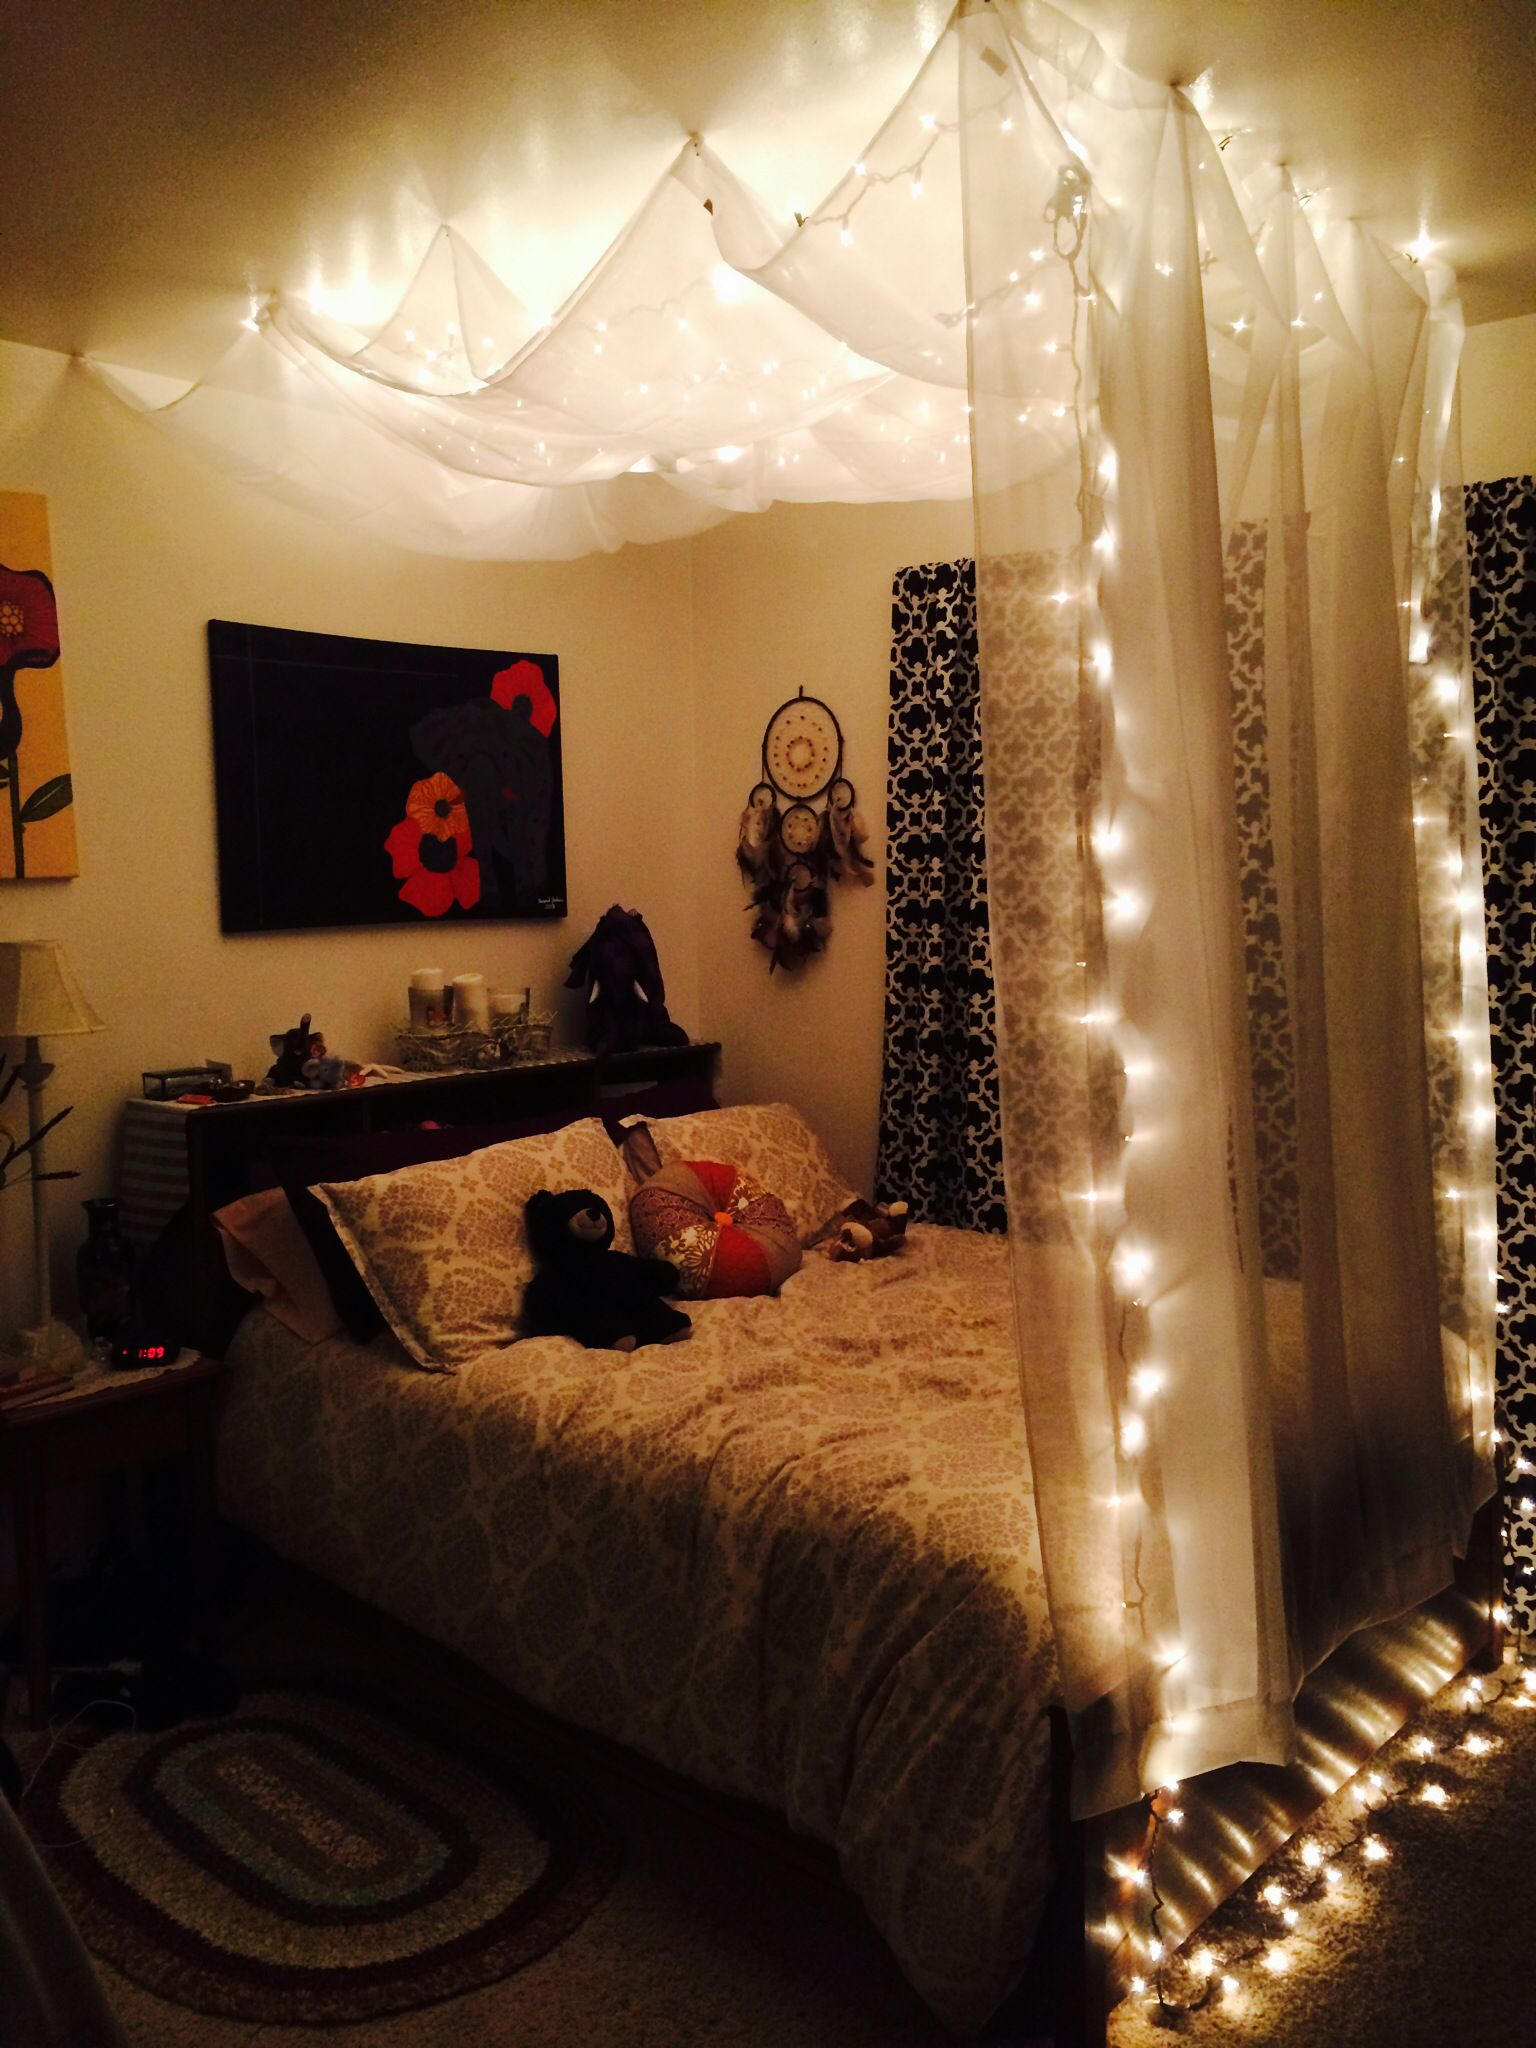 Diy bed canopy dorm - Quarto Luzes Diy Hanging Bed Canopy Using 5 Sheer White Curtains From Target